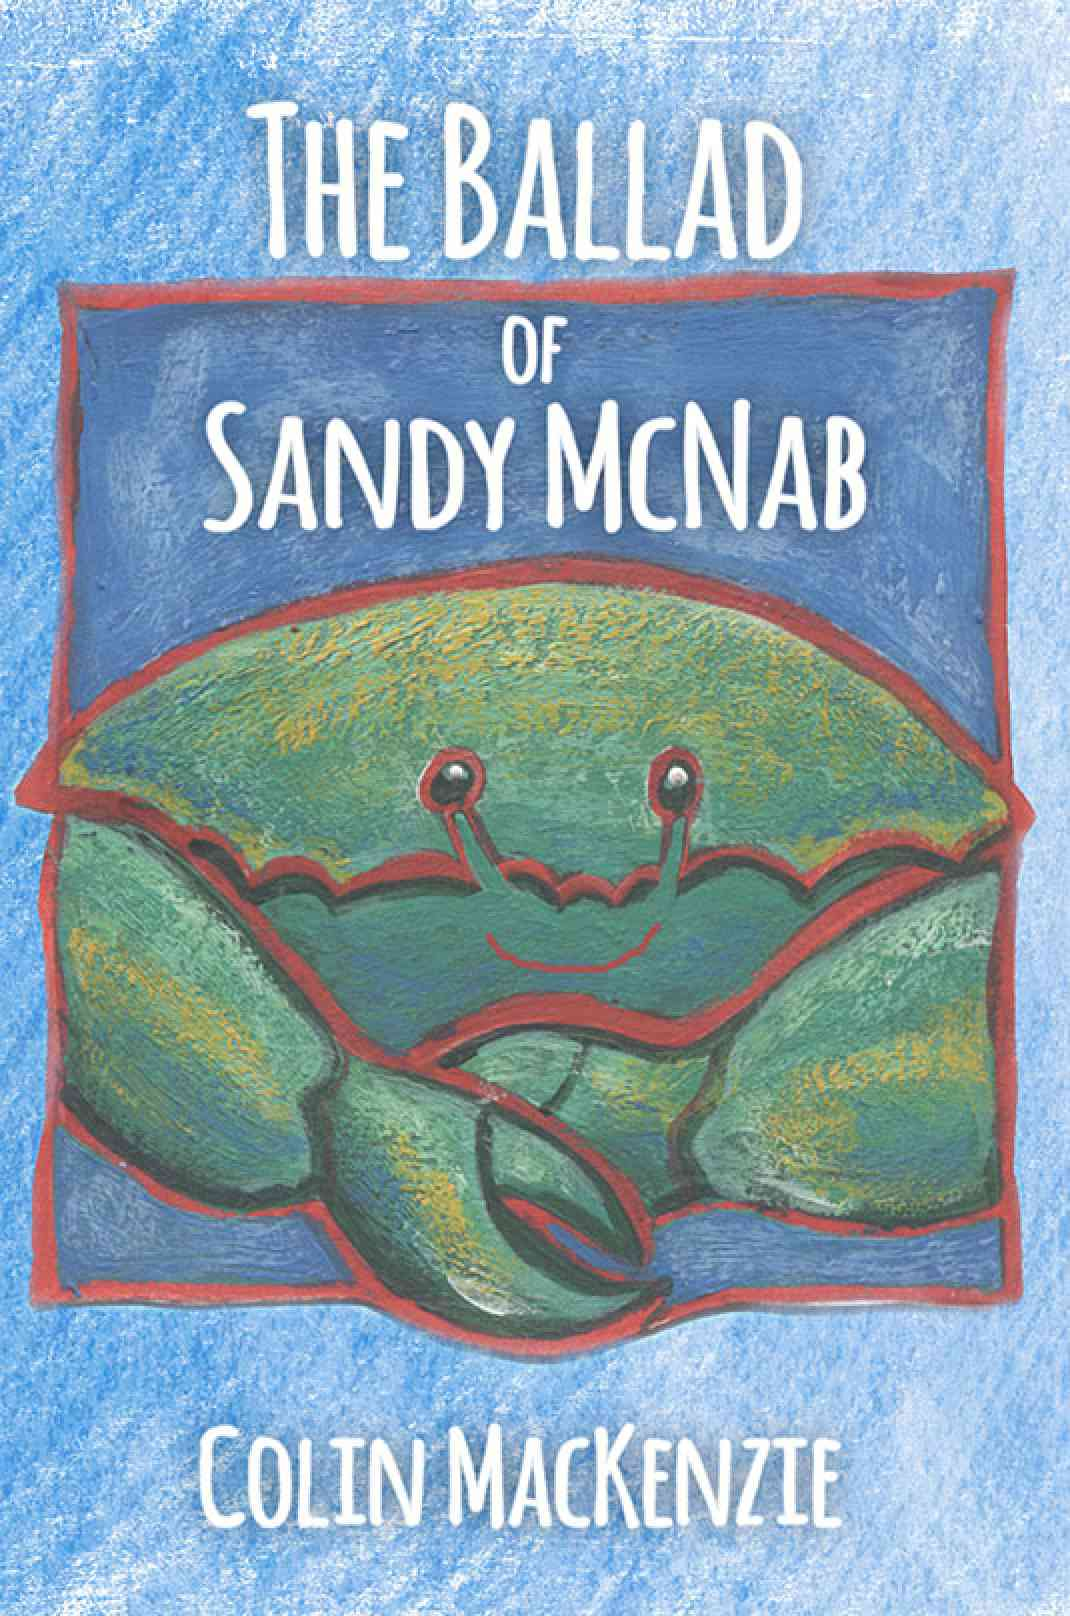 The Ballad of Sandy McNab